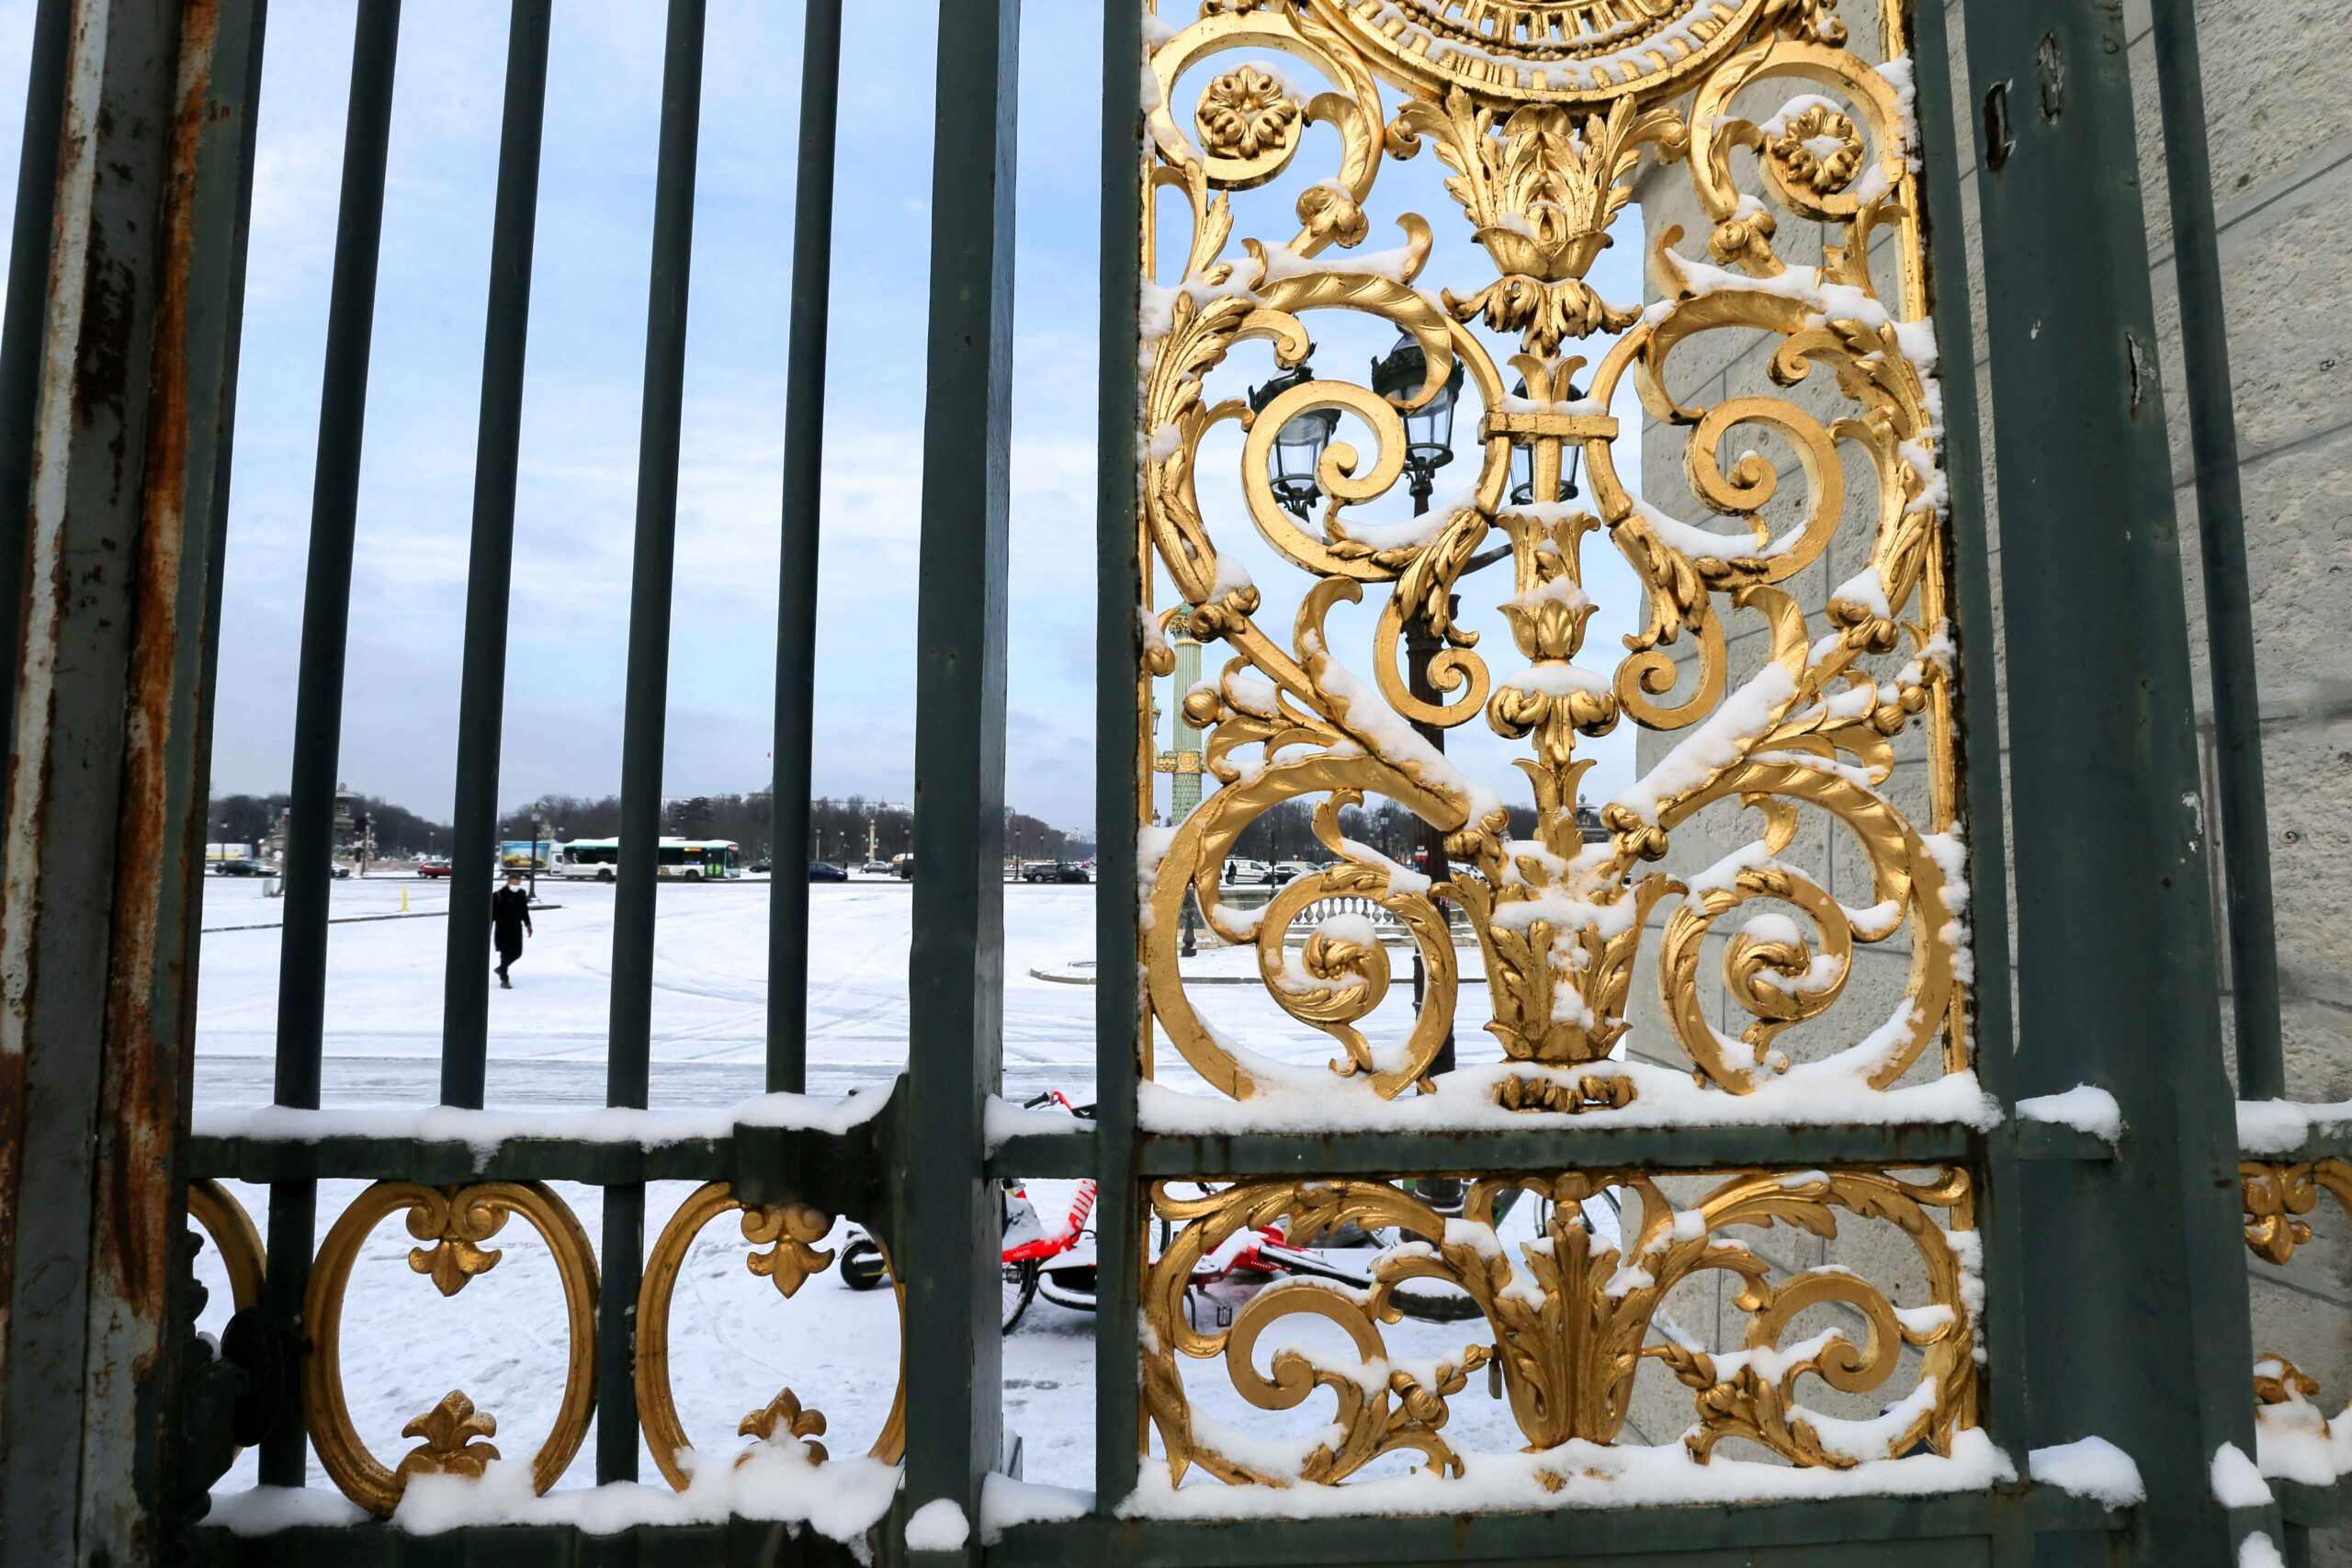 The entrance to the Tuileries garden, in Paris, is covered in snow on February 10, 2021, following an overnight snowfall. In parts of the Paris region authorities cancelled school buses and urged parents to keep children at home. The city of Paris has open